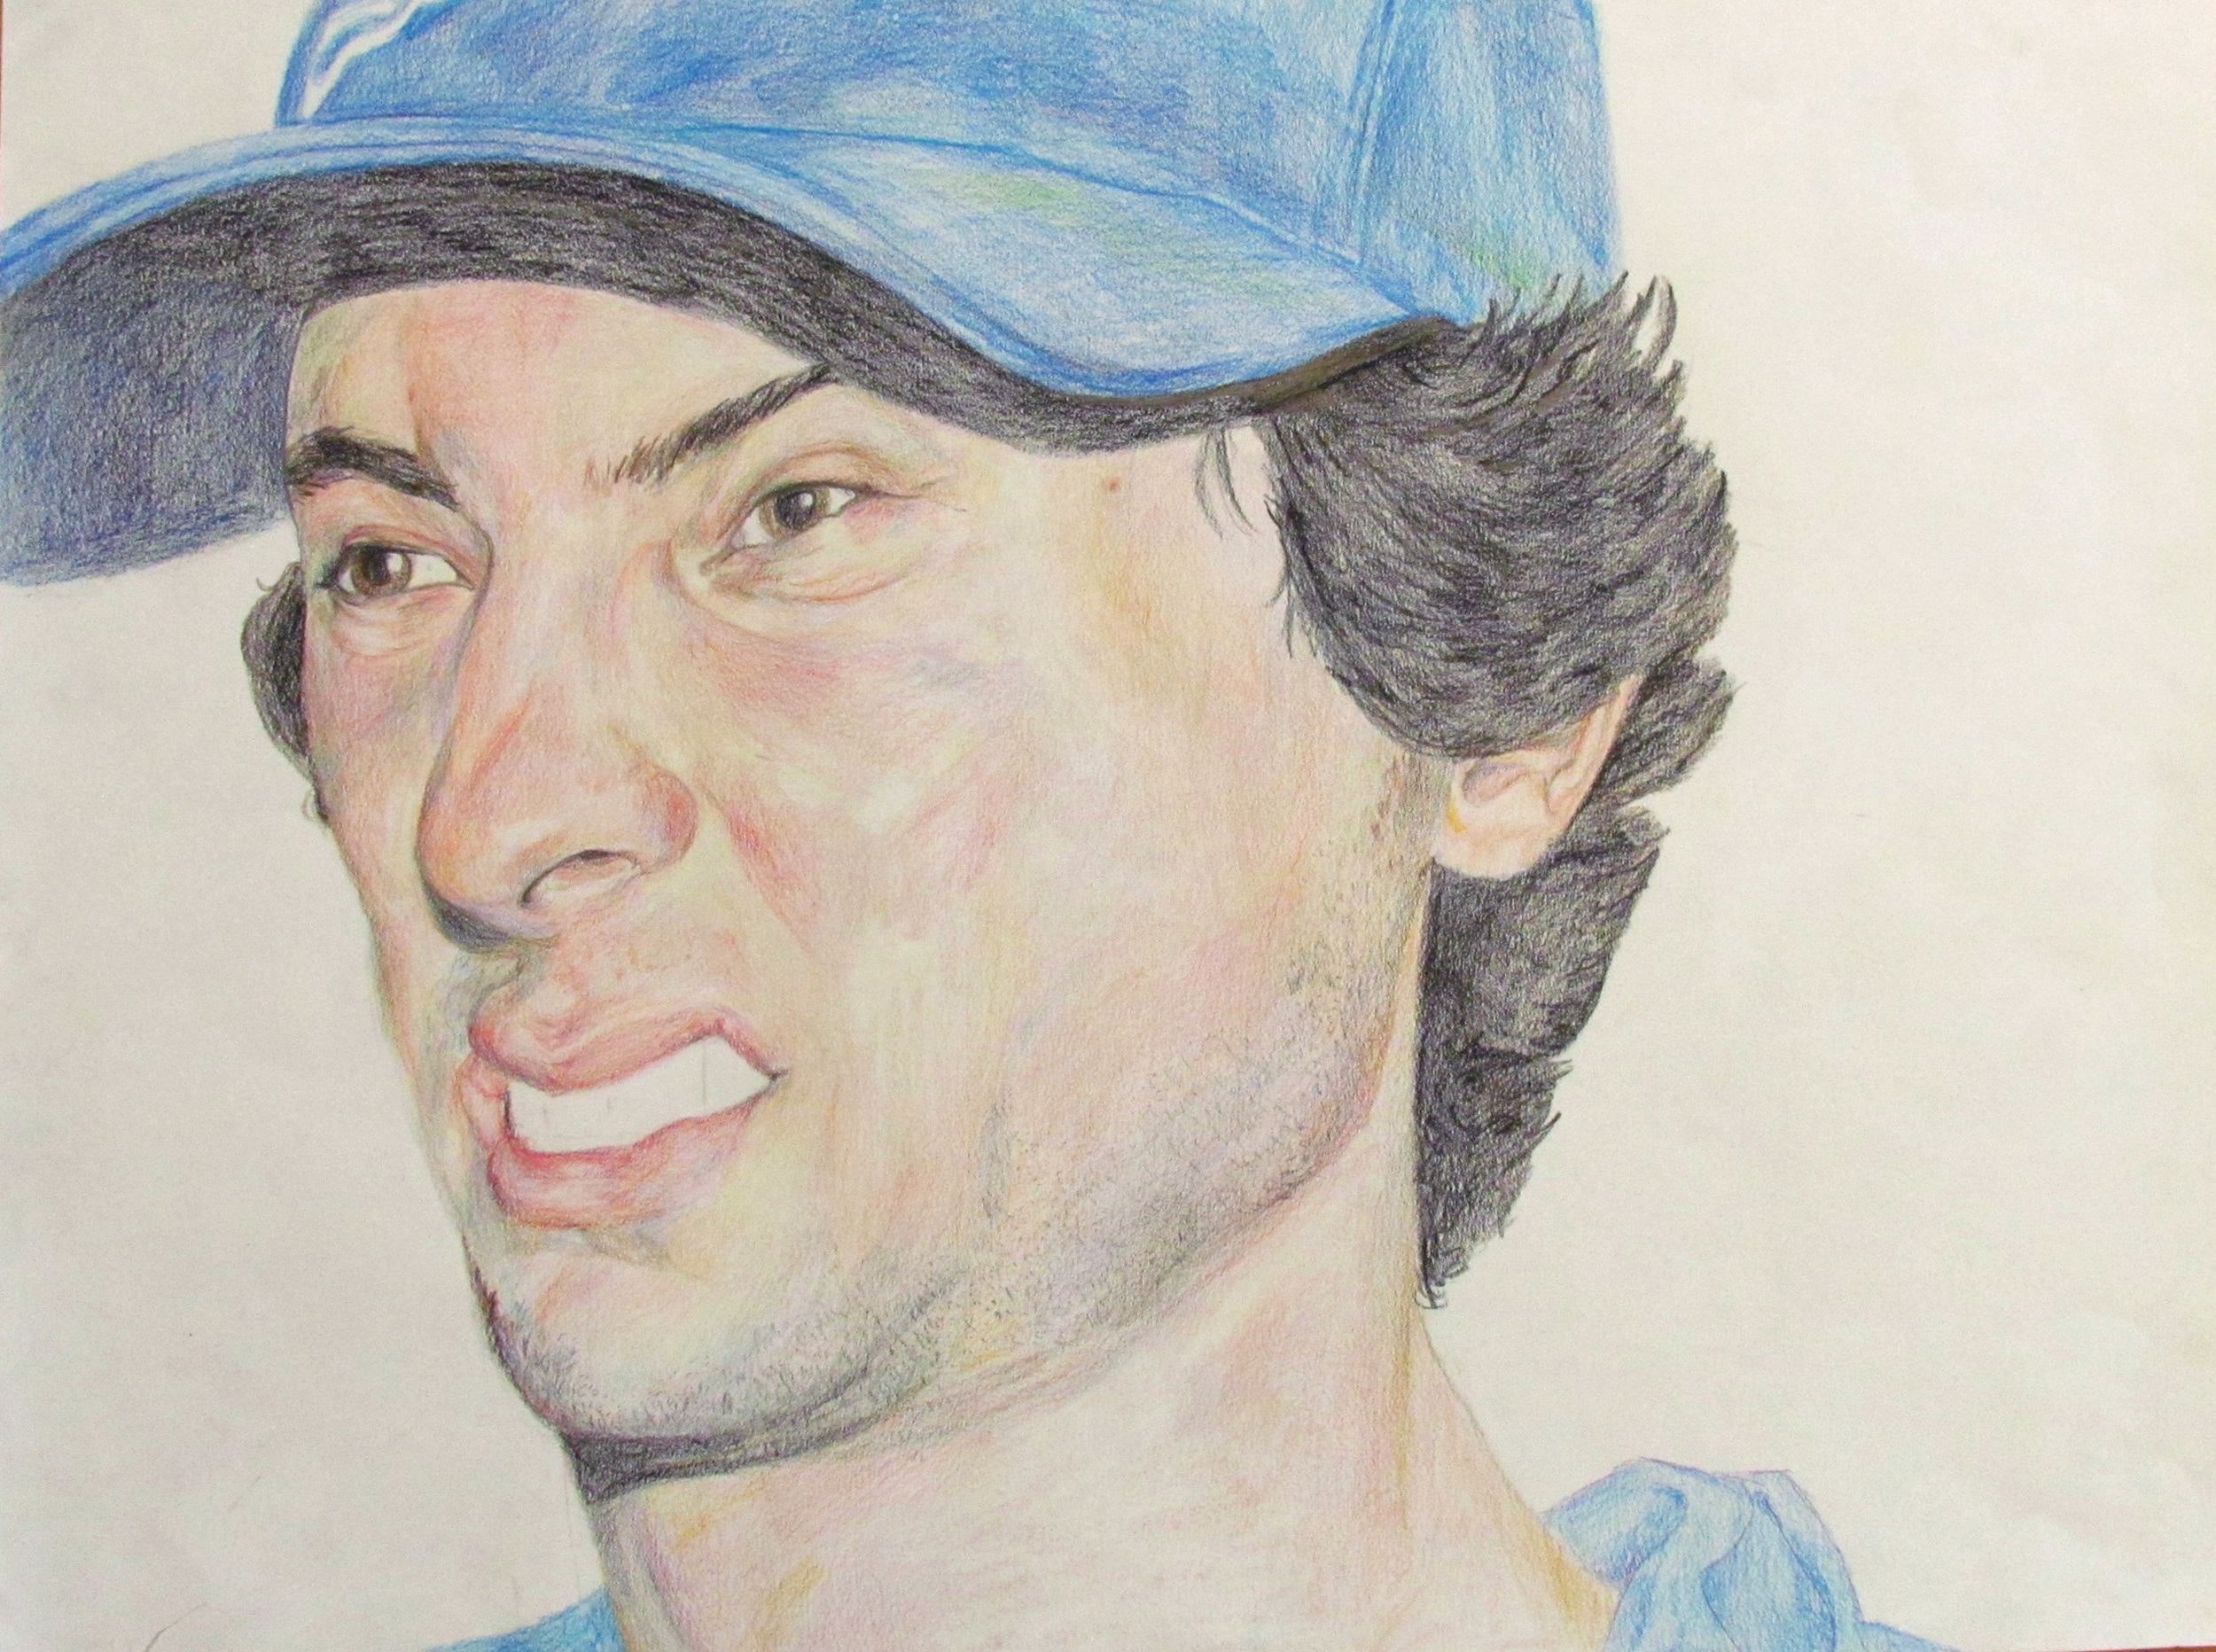 Ethan's Response to a Flash , 2010, Colored Pencil on Paper, 30 inches (76.2 cm) x 40 inches (101.6 cm)